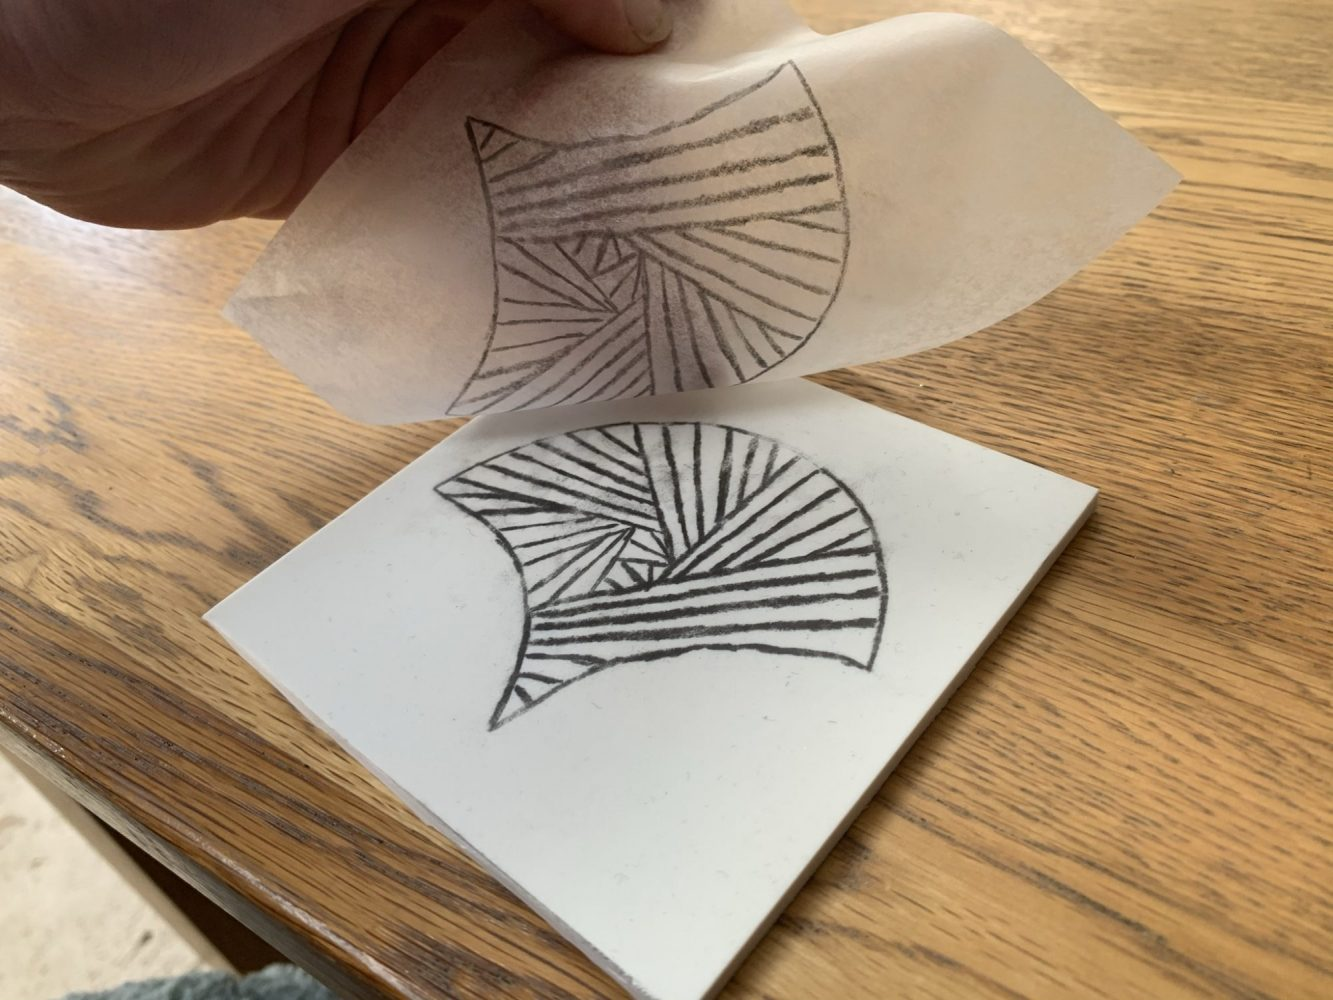 Fan image being transferred from tracing paper onto softcut material